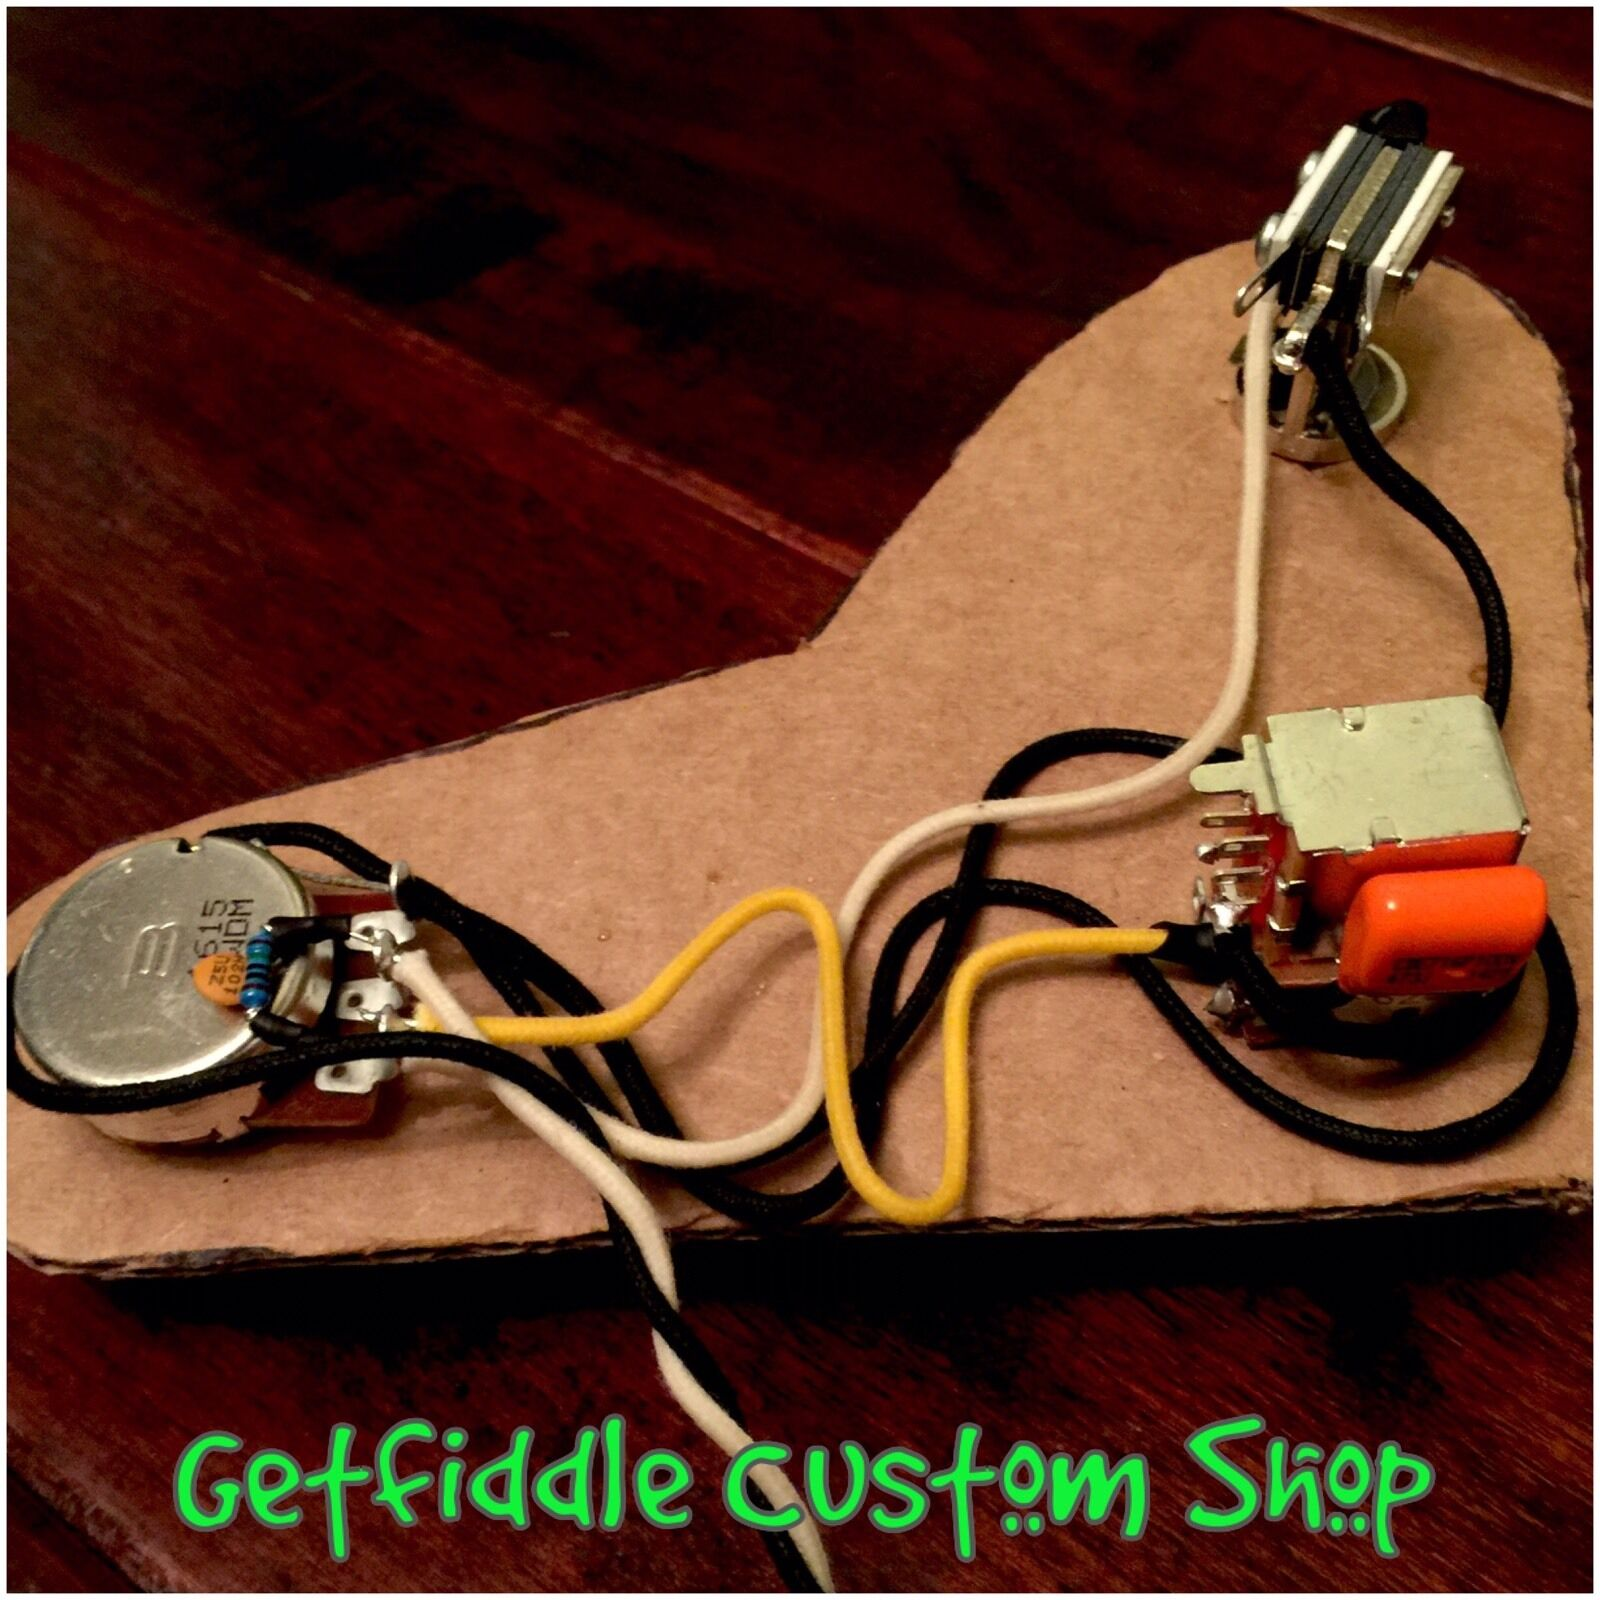 Prs Upgraded Wiring Harness Coil Split Push Pull Pot Bourns 1 Volume One Tone Of 7free Shipping